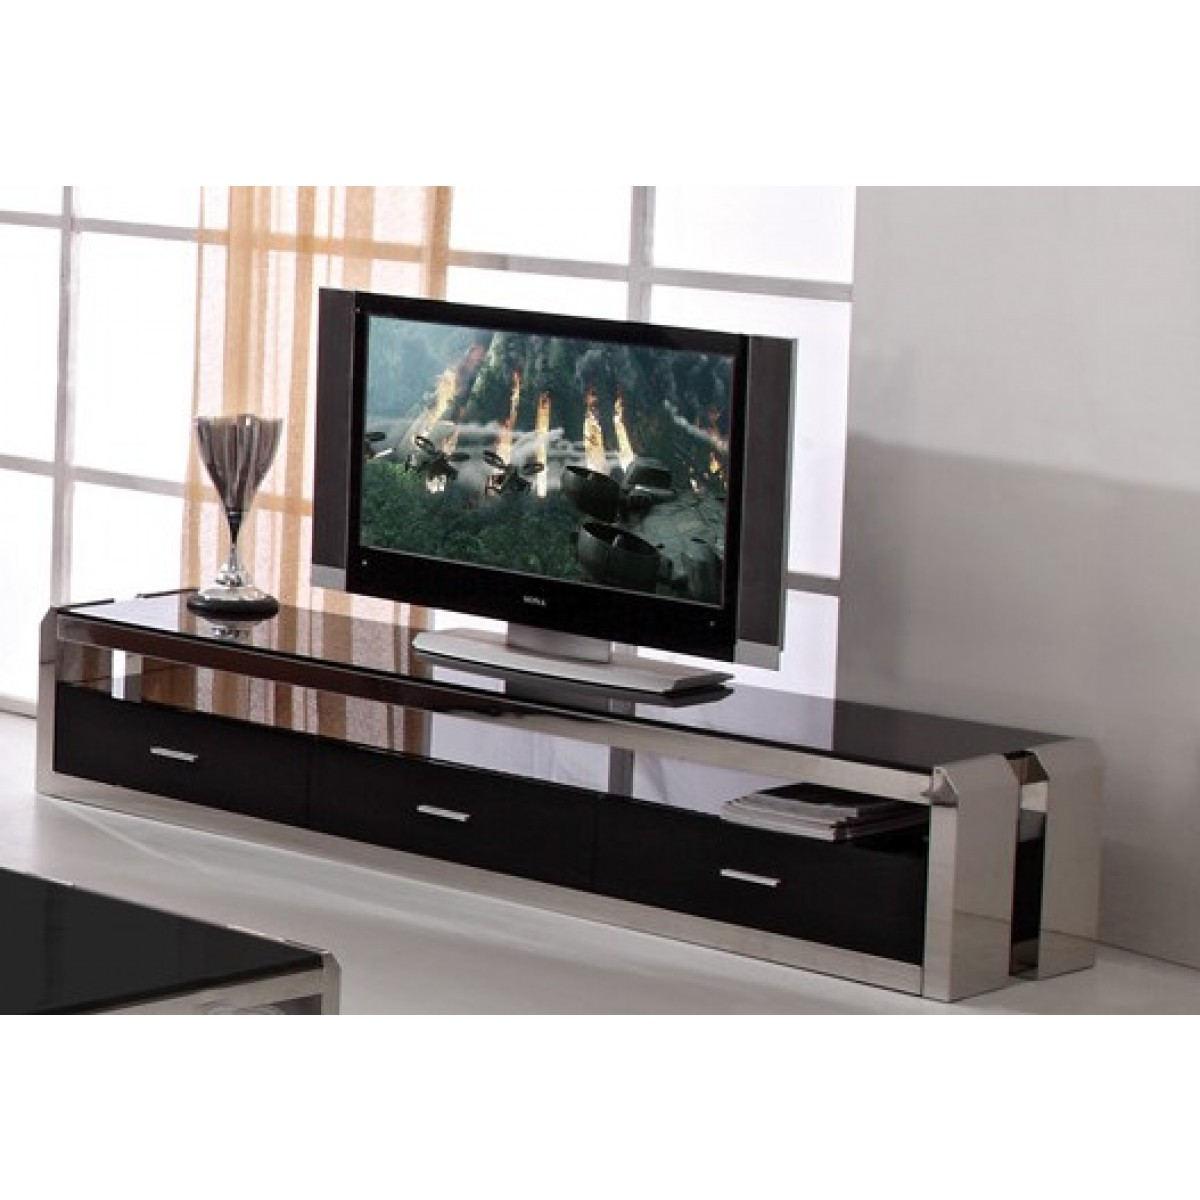 meuble tv inox mobilier design d coration d 39 int rieur. Black Bedroom Furniture Sets. Home Design Ideas